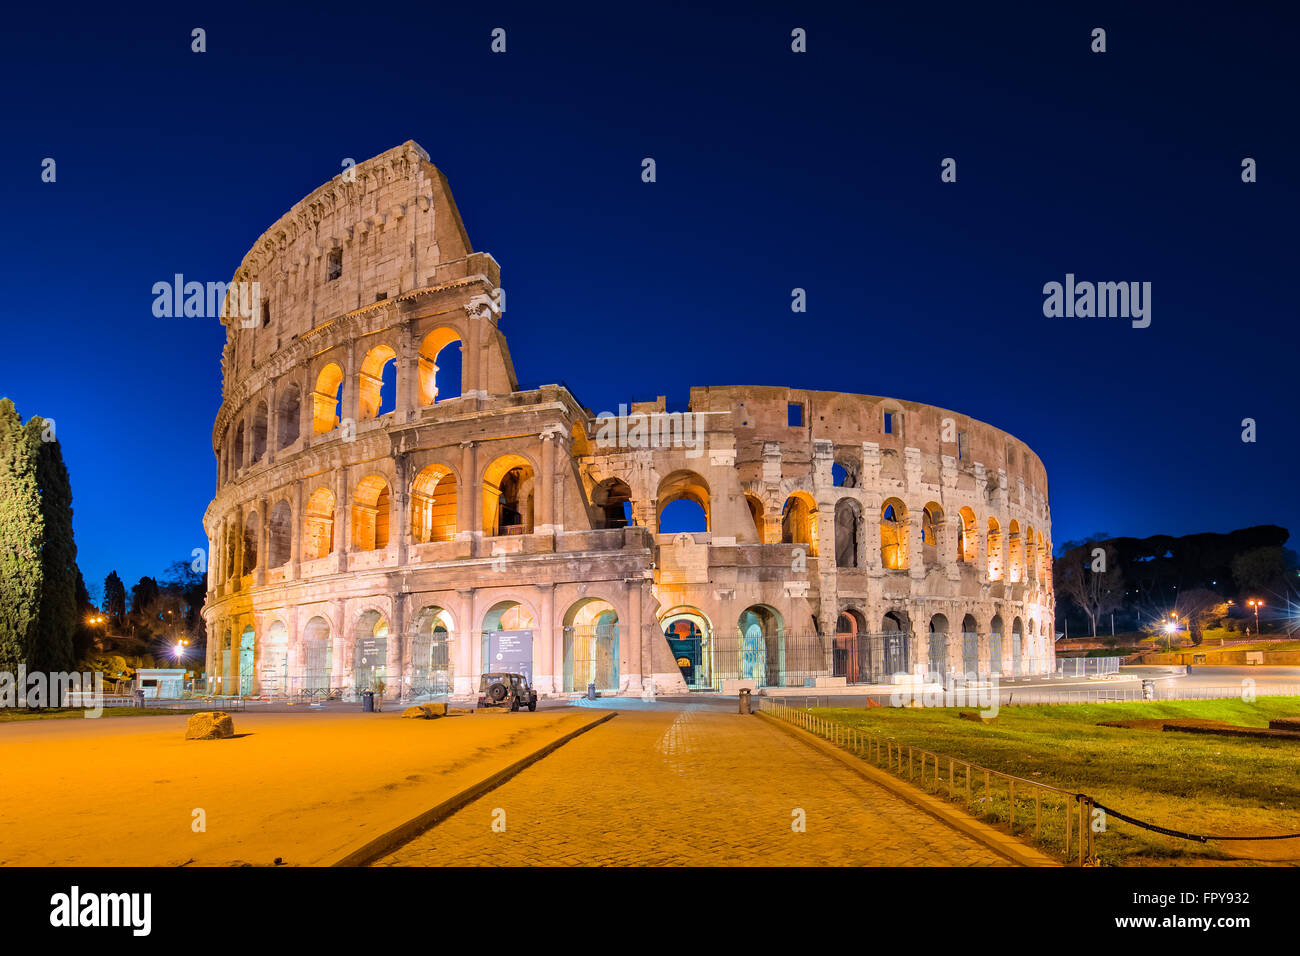 Colosseum in a summer night in Rome, Italy. - Stock Image